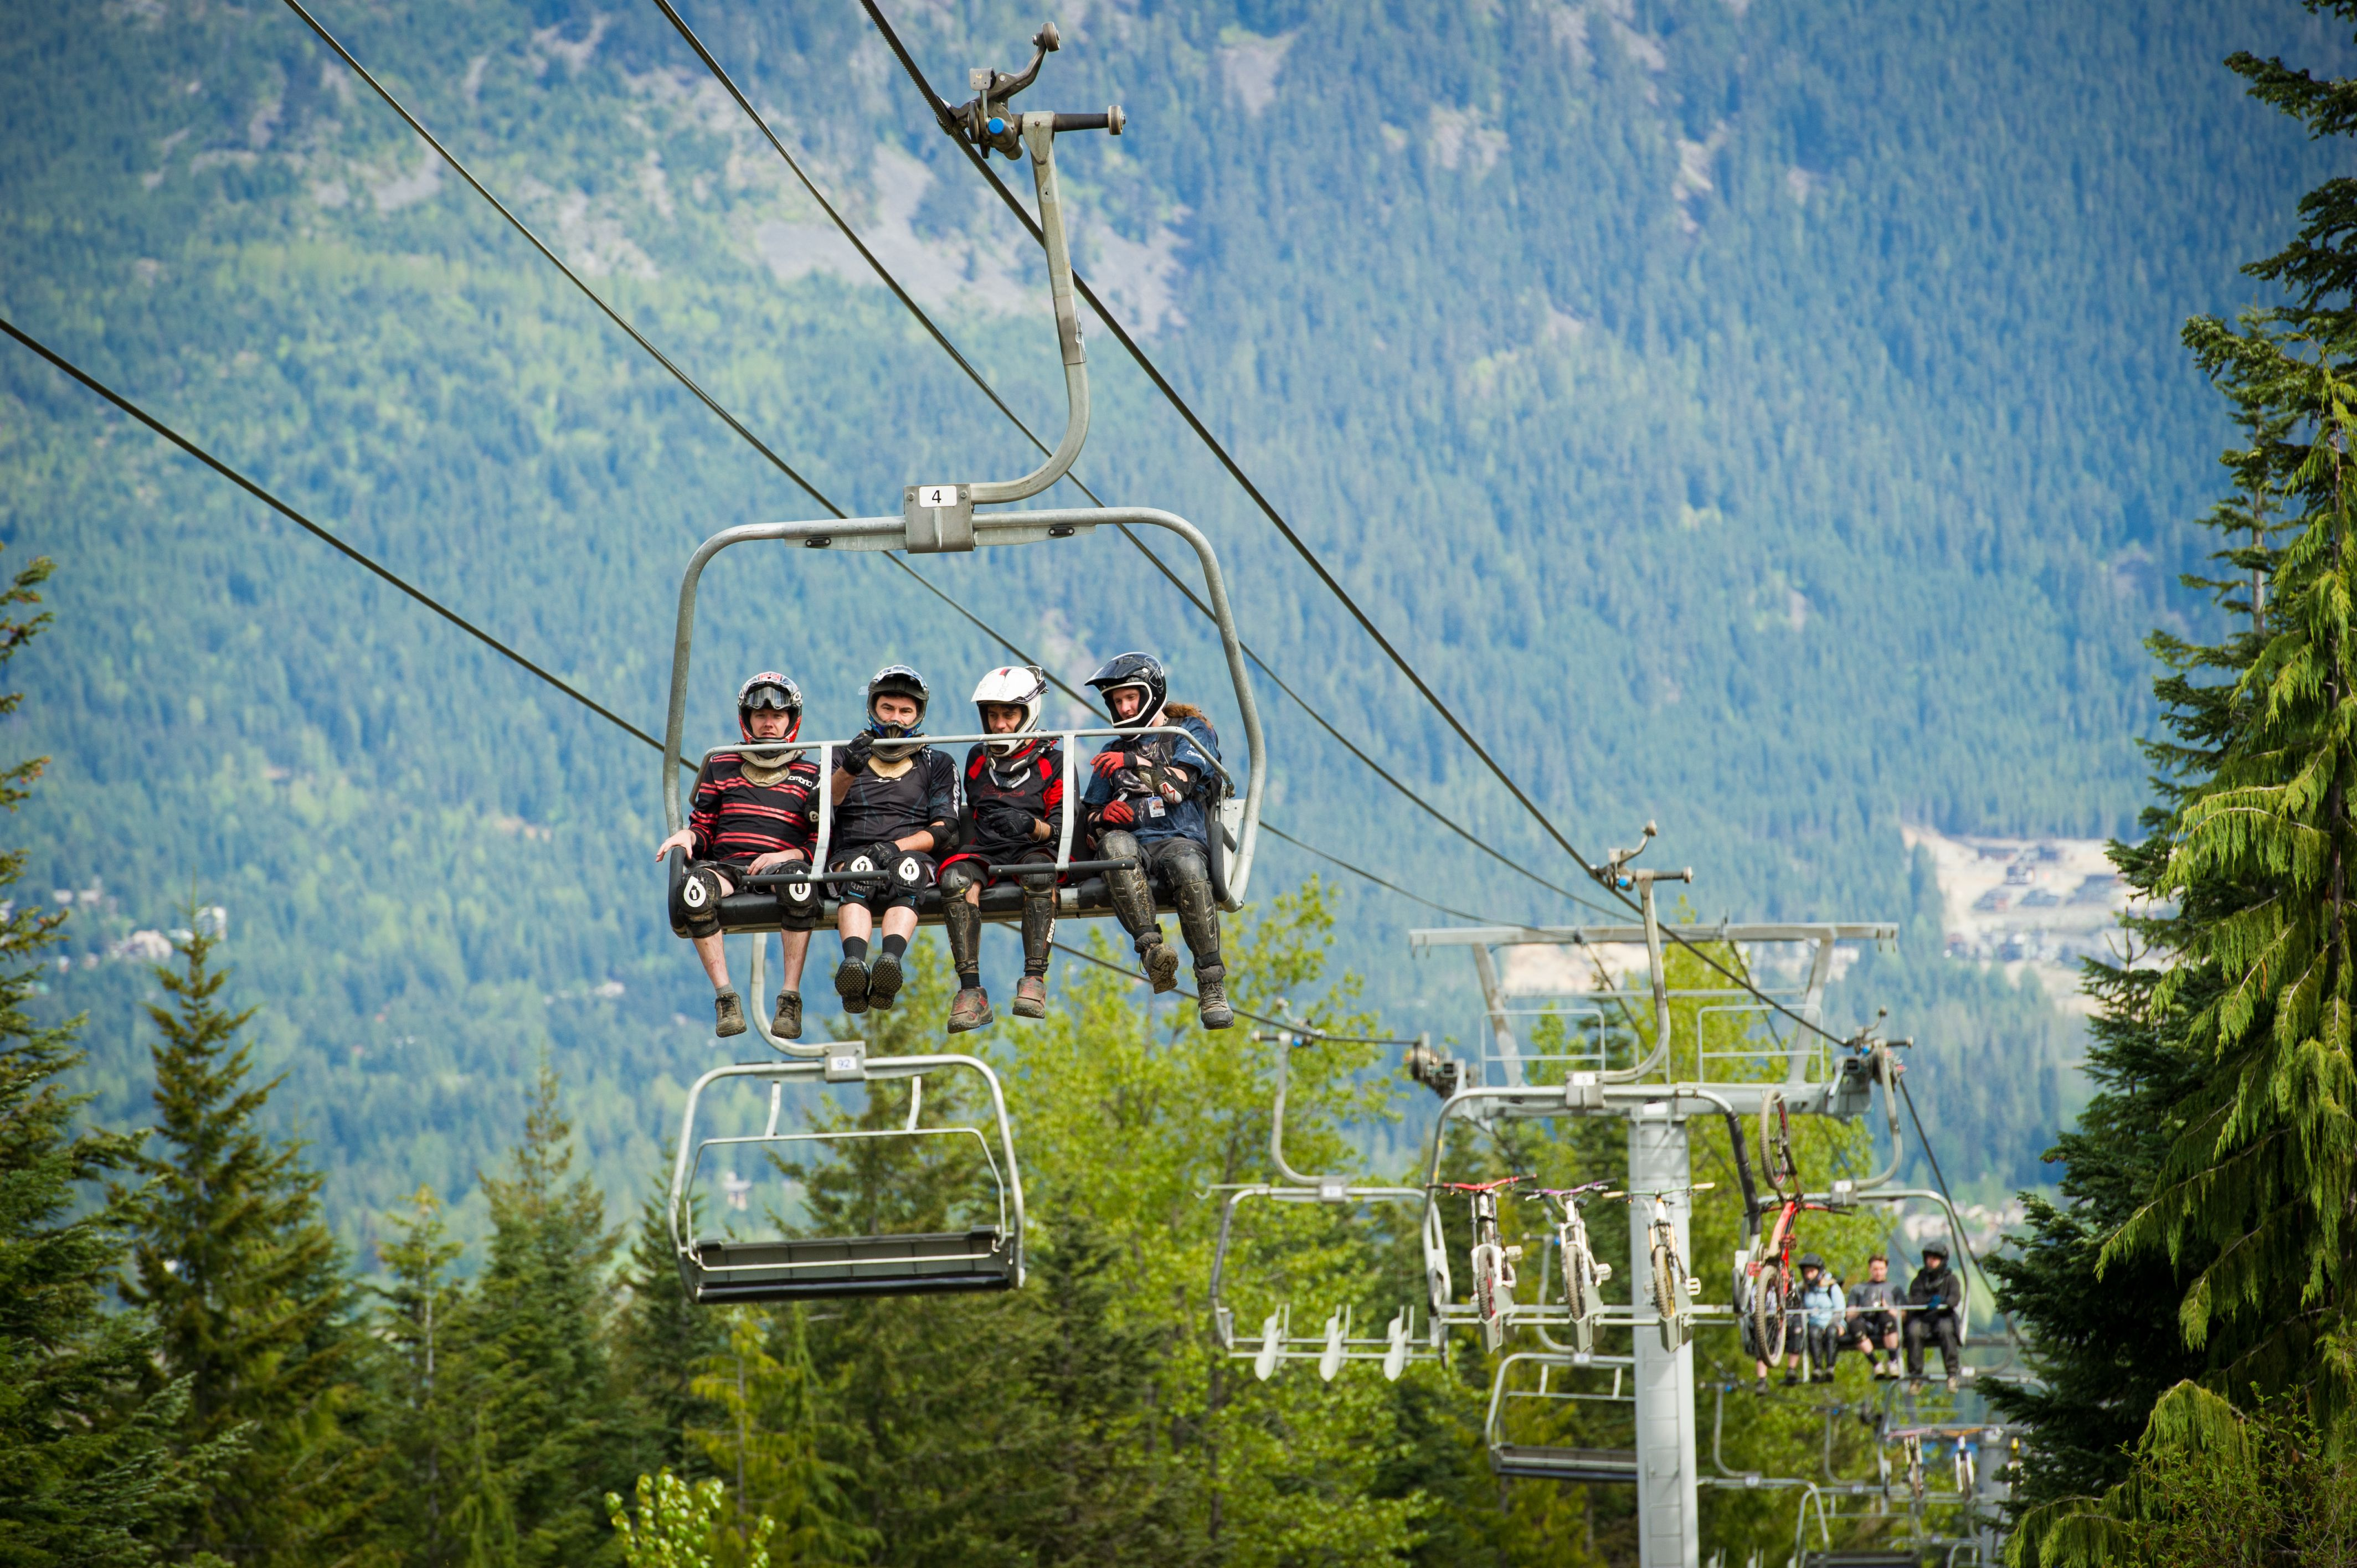 Summer mountain biking vacations in Whistler, BC, Canada